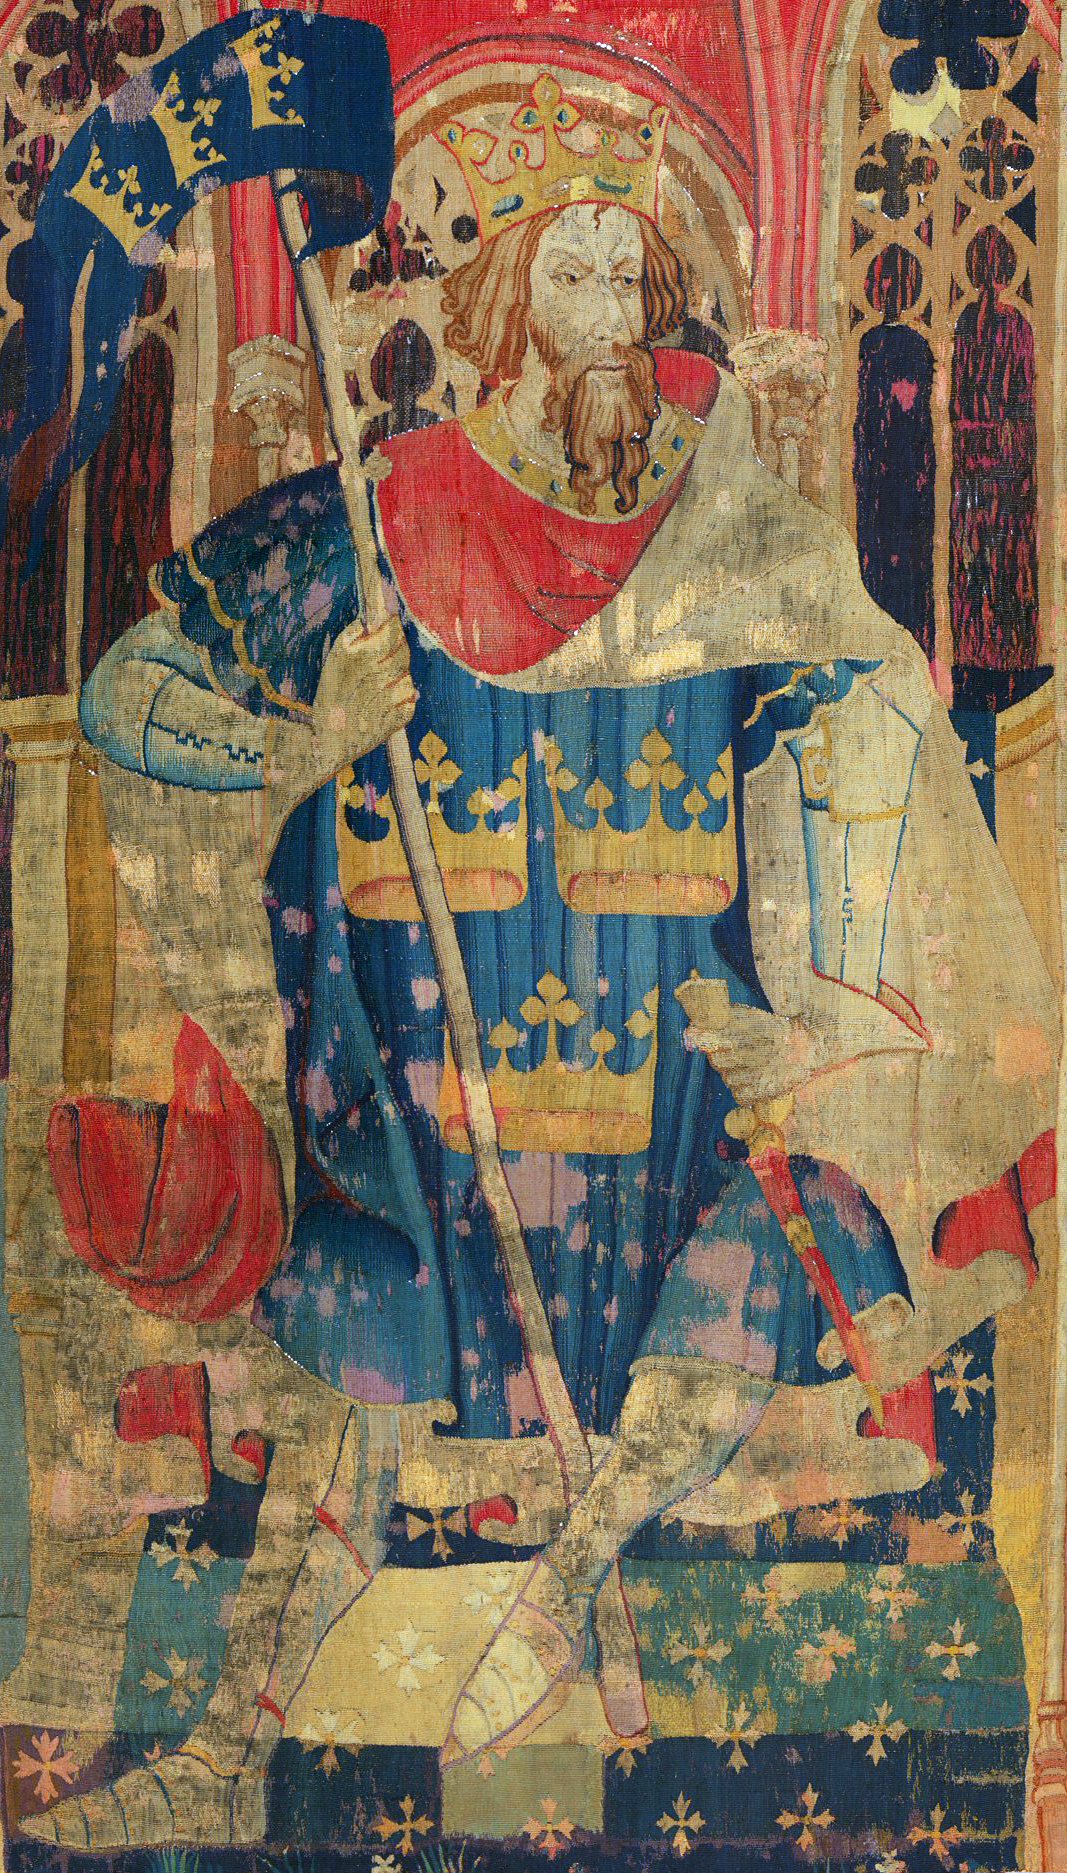 http://upload.wikimedia.org/wikipedia/commons/5/54/Arth_tapestry2.jpg